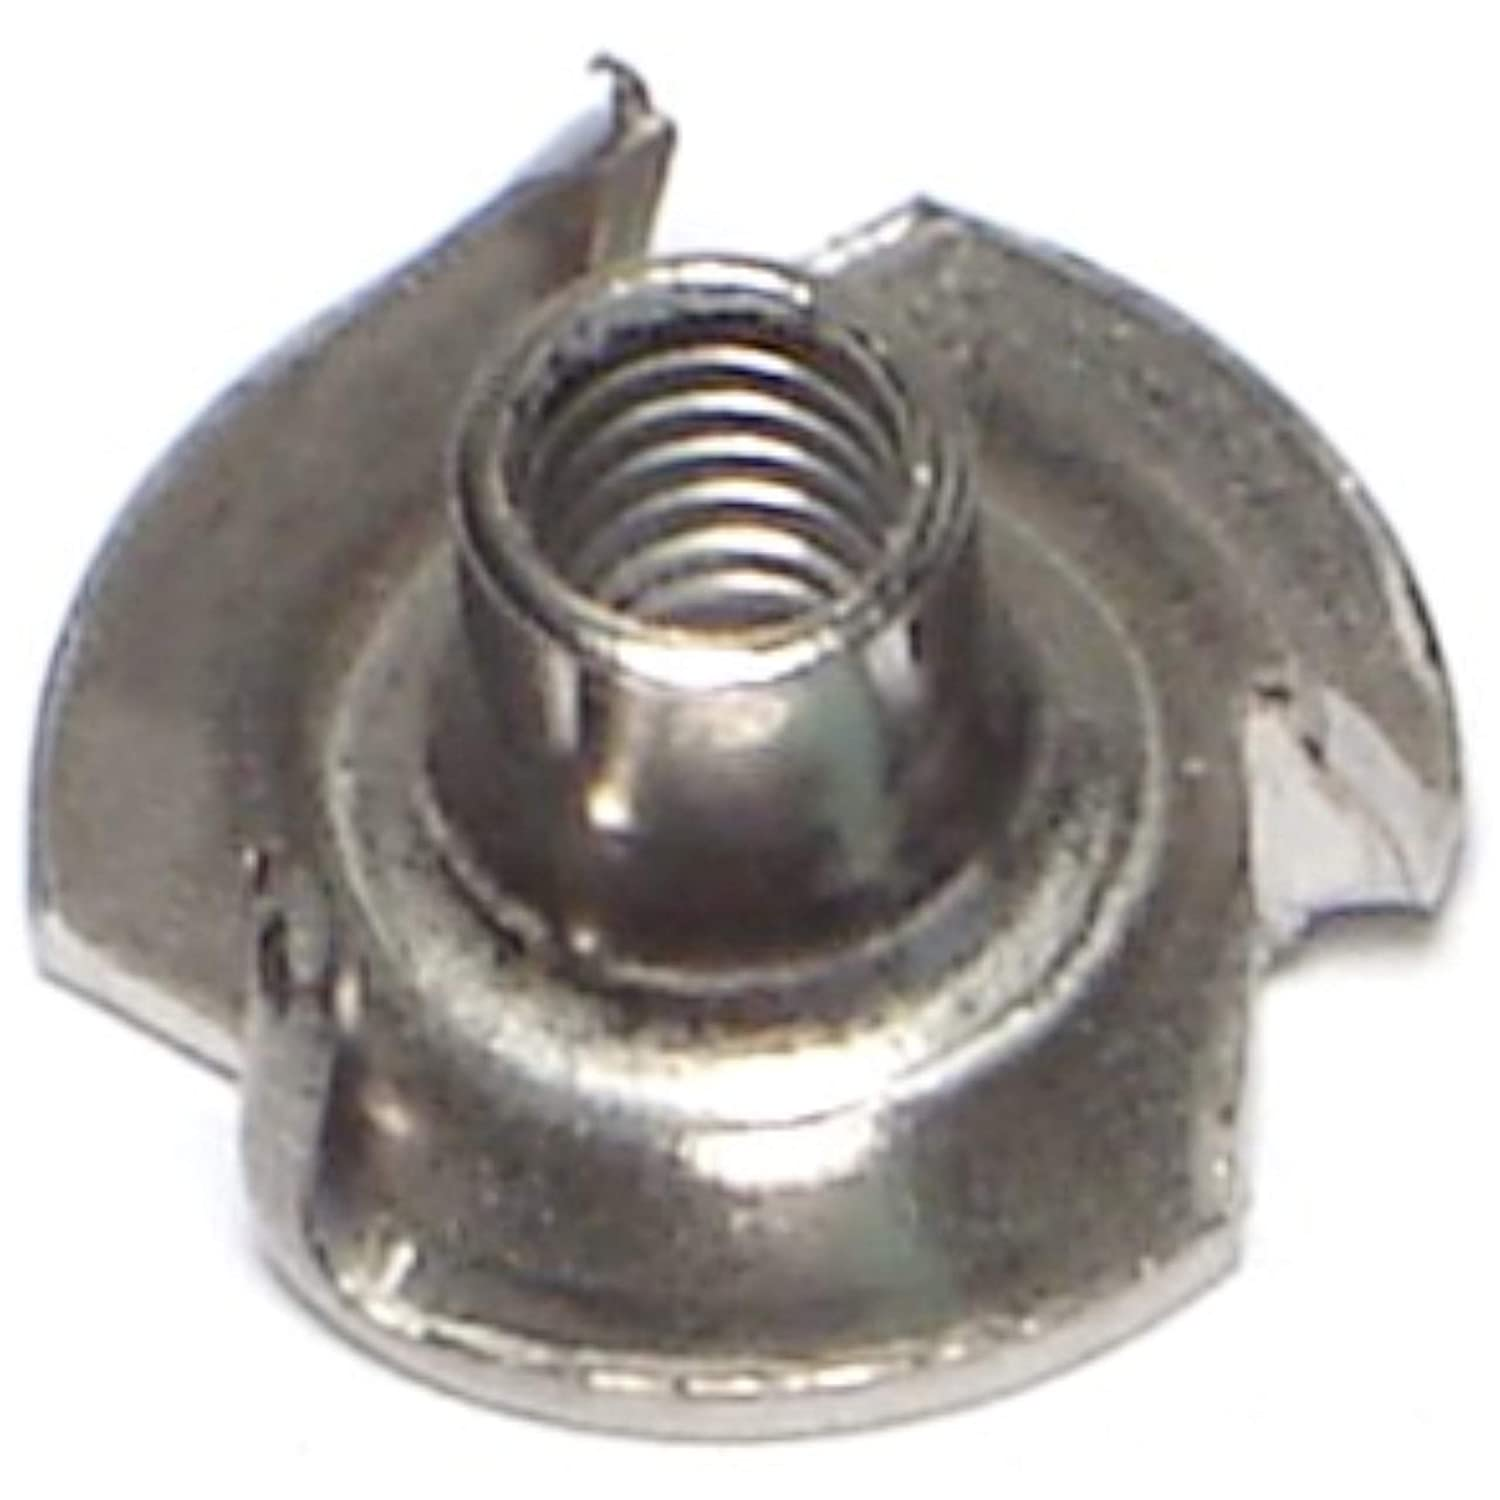 Piece-10 8-32 x 1//4 Hard-to-Find Fastener 014973209056 Pronged Tee Nuts